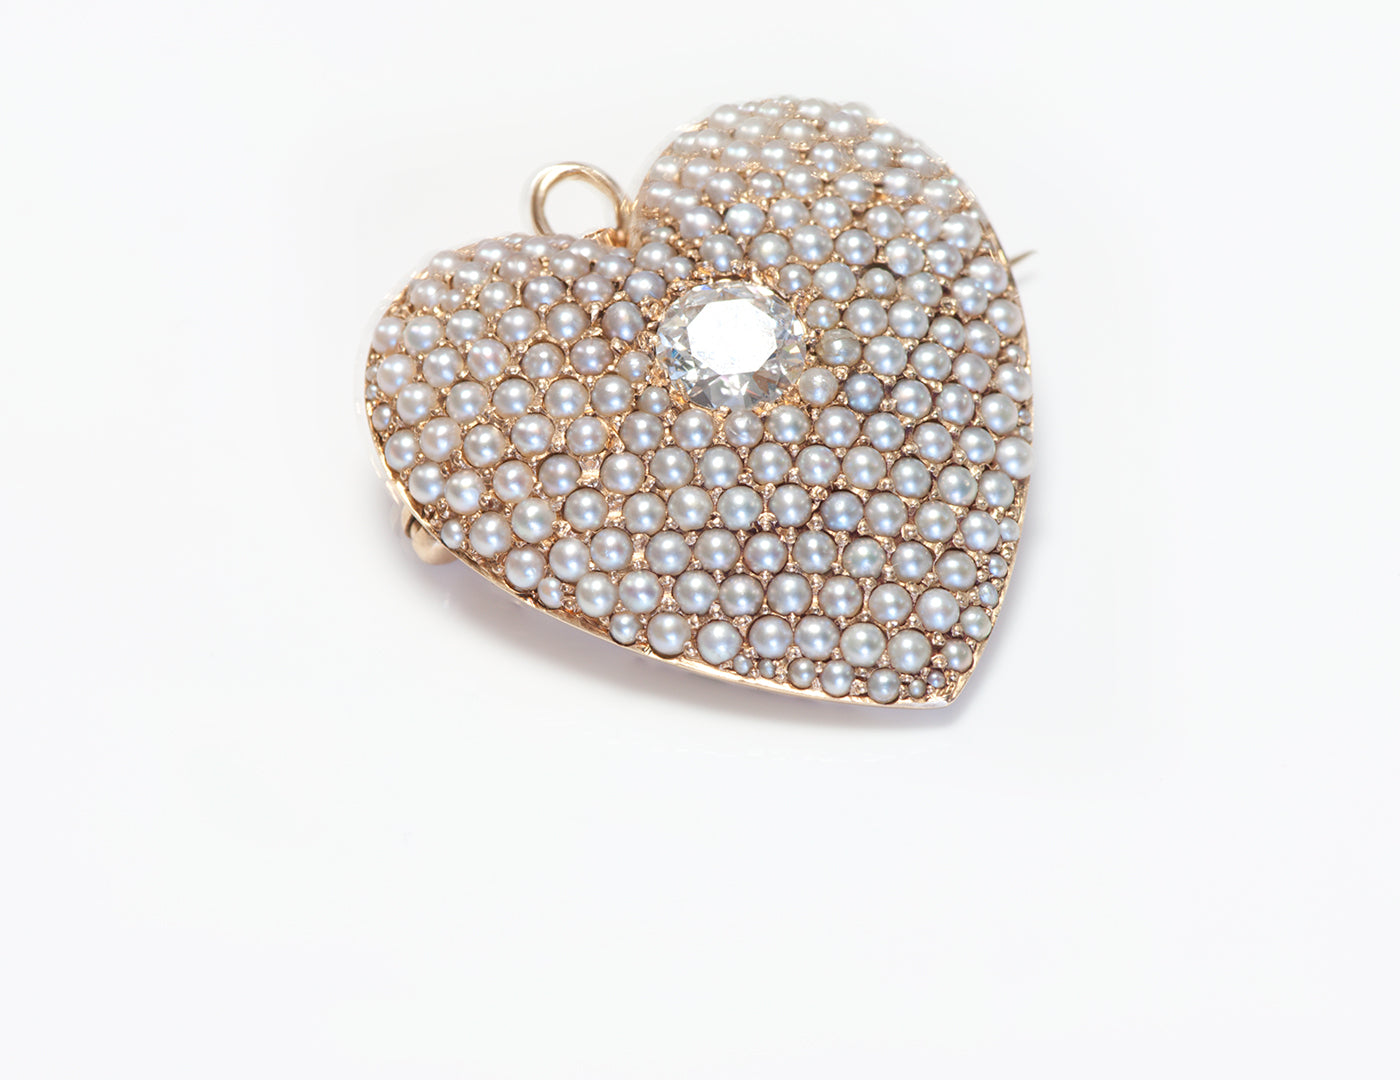 antique-gold-diamond-seed-pearl-heart-pendant-brooch